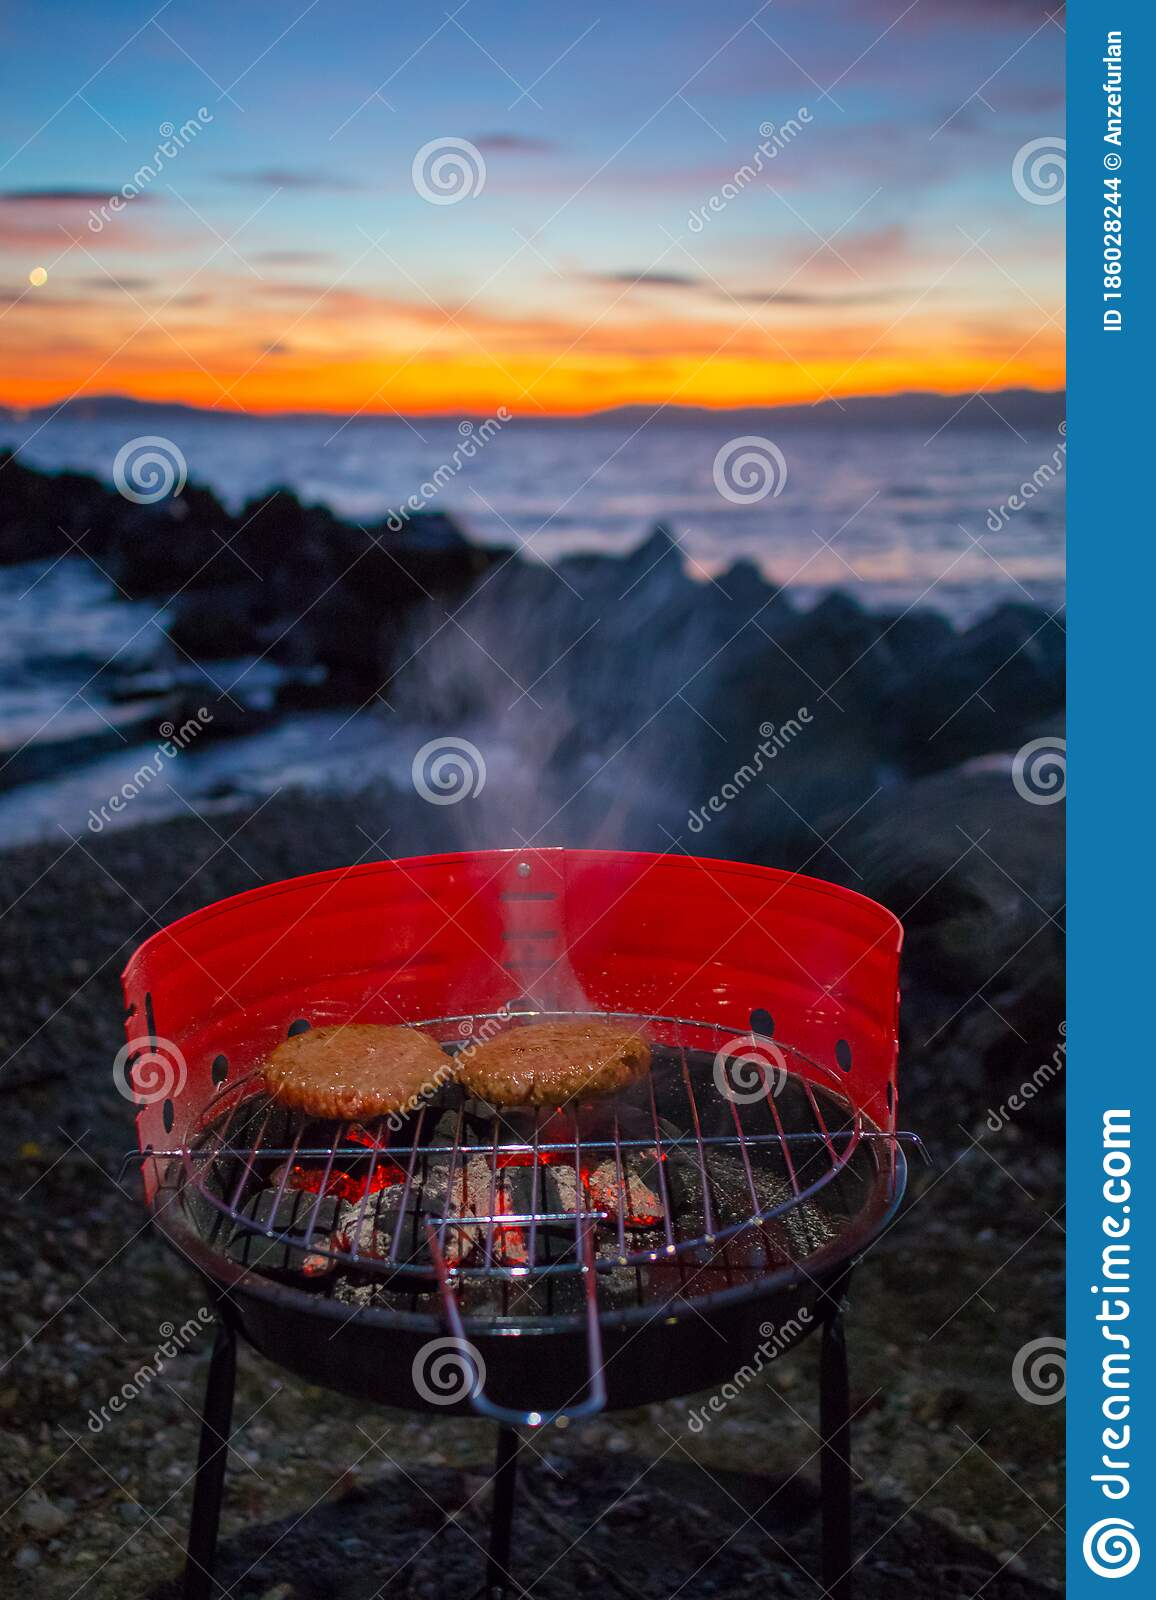 Grilling Burgers On A Small Metal Portable Charcoal Grill On The Shores Of Lac Leman In Switzerland During Early Winter Evening Stock Photo Image Of Orange Charcoal 186028244